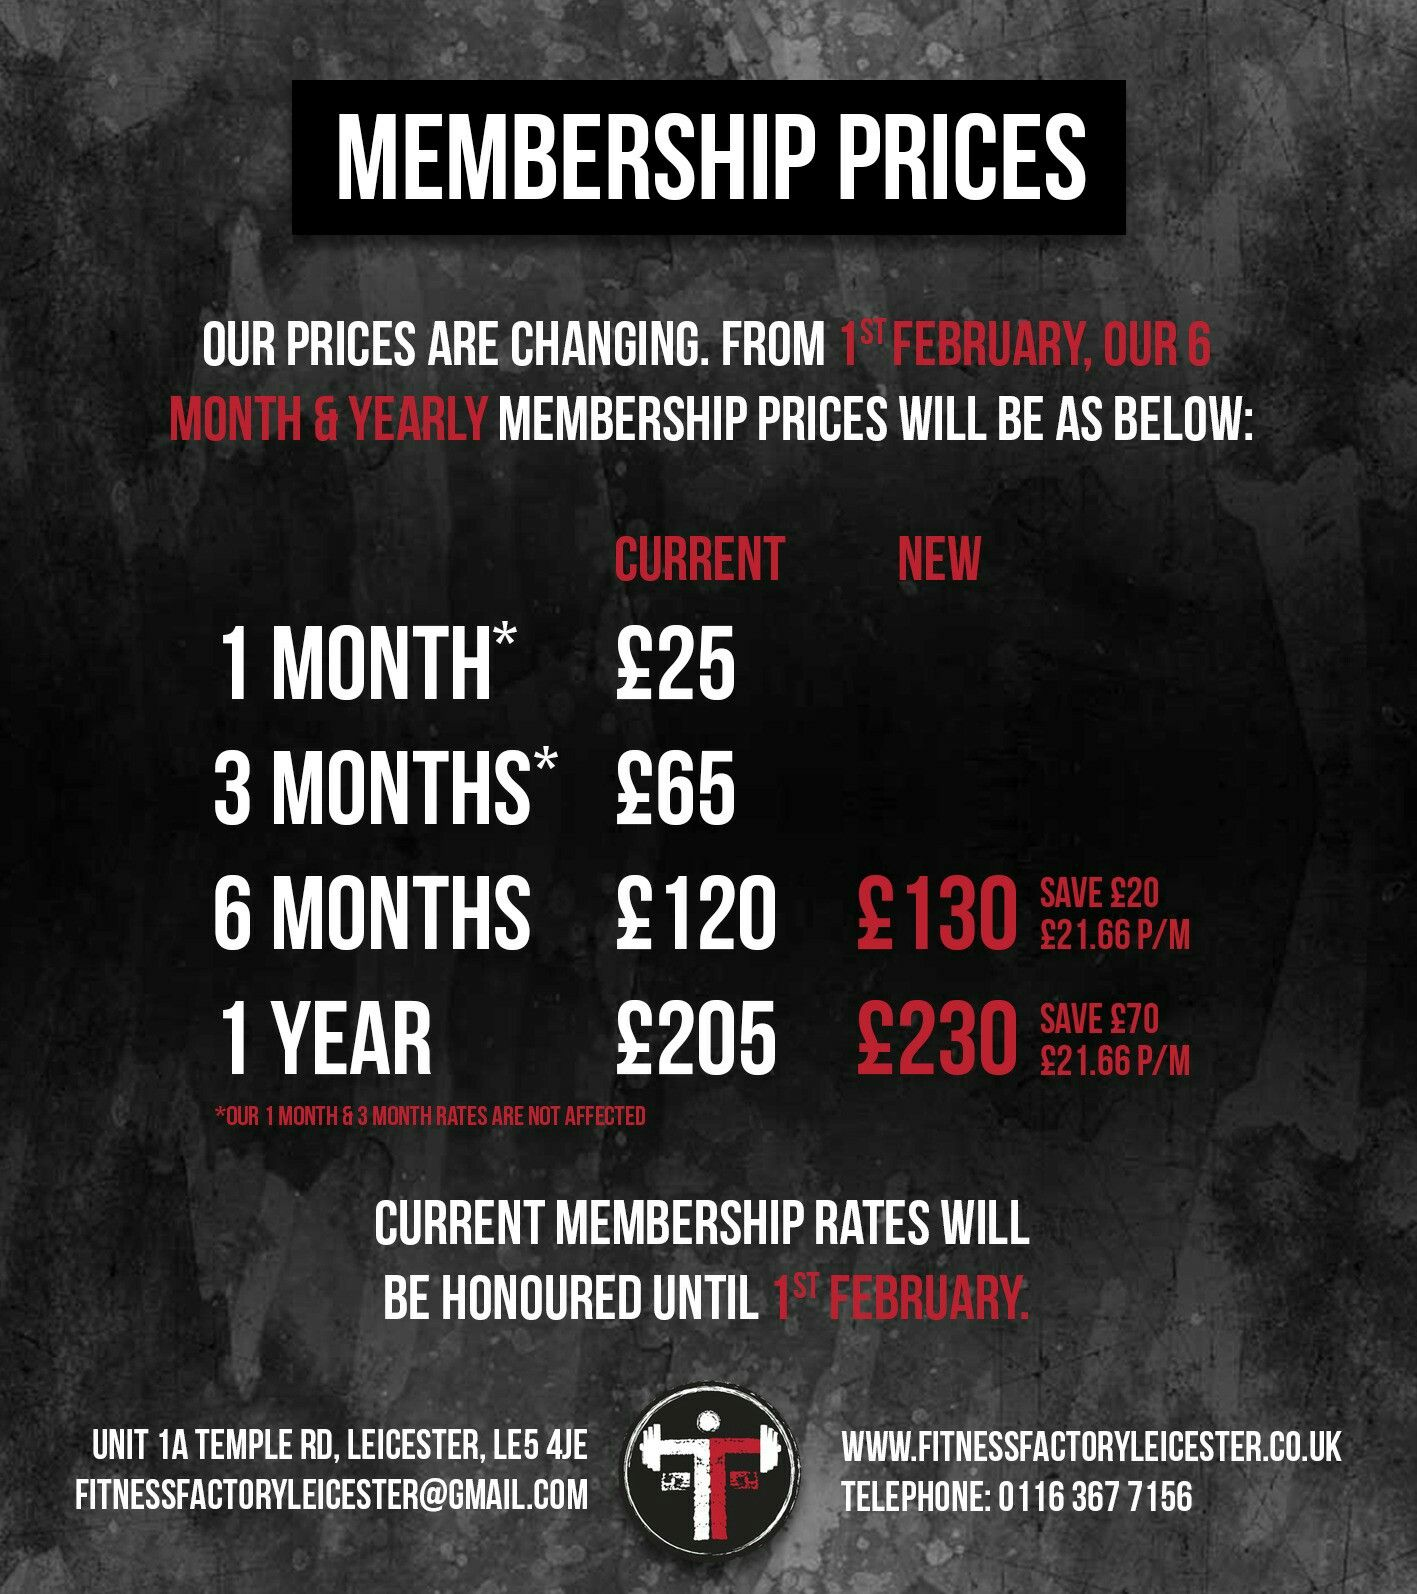 Membership Price Post For Fitness Factory Leicester Advertising Their Gym Membership Prices Across Social Media Gym Membership Prices Gym Membership Gym